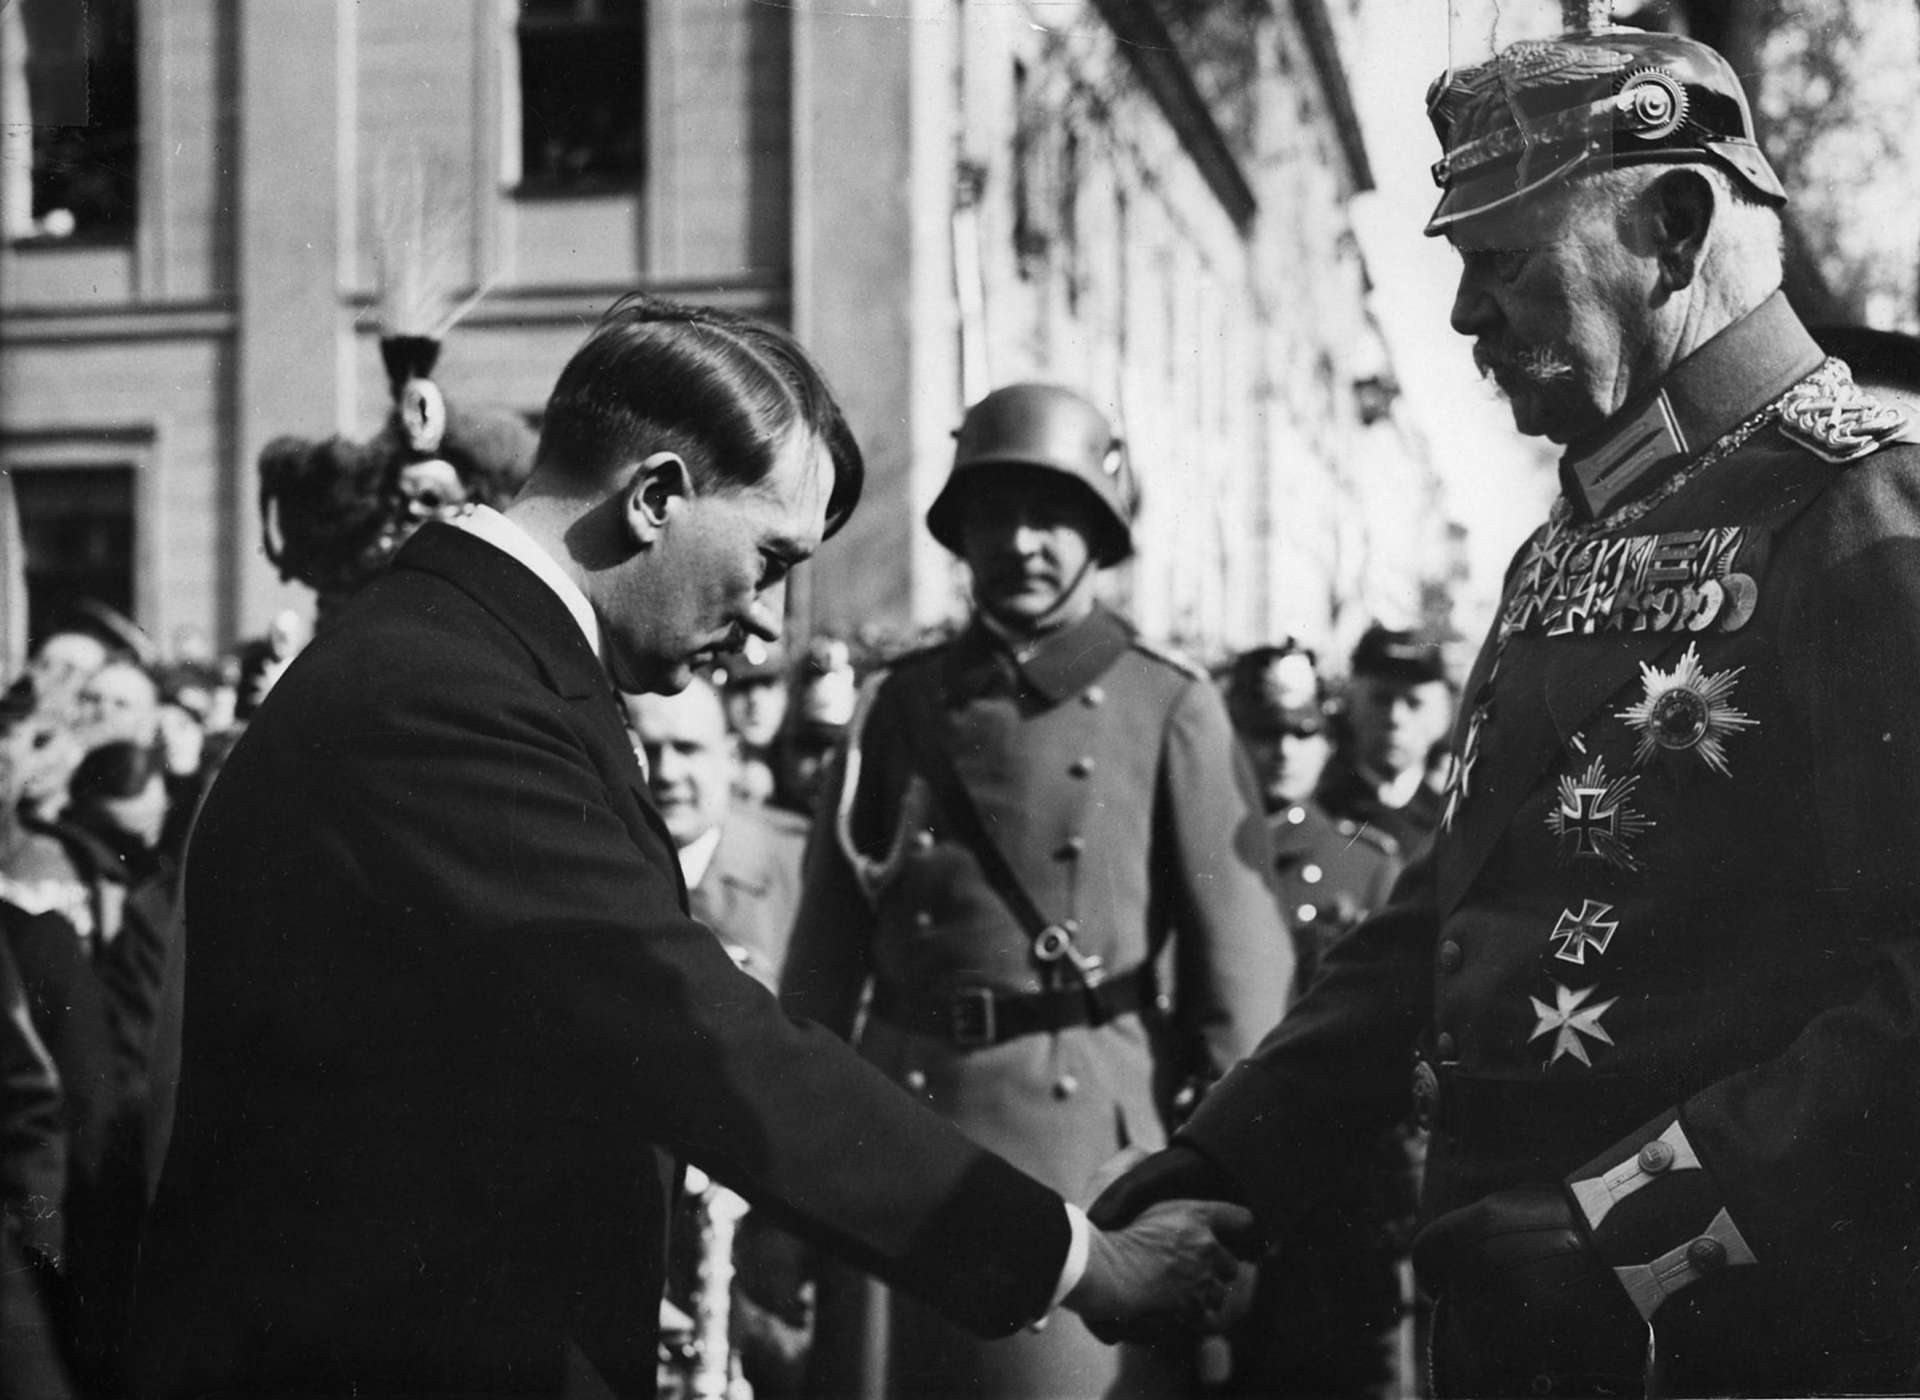 Hitler and the kaiser, WWII-era